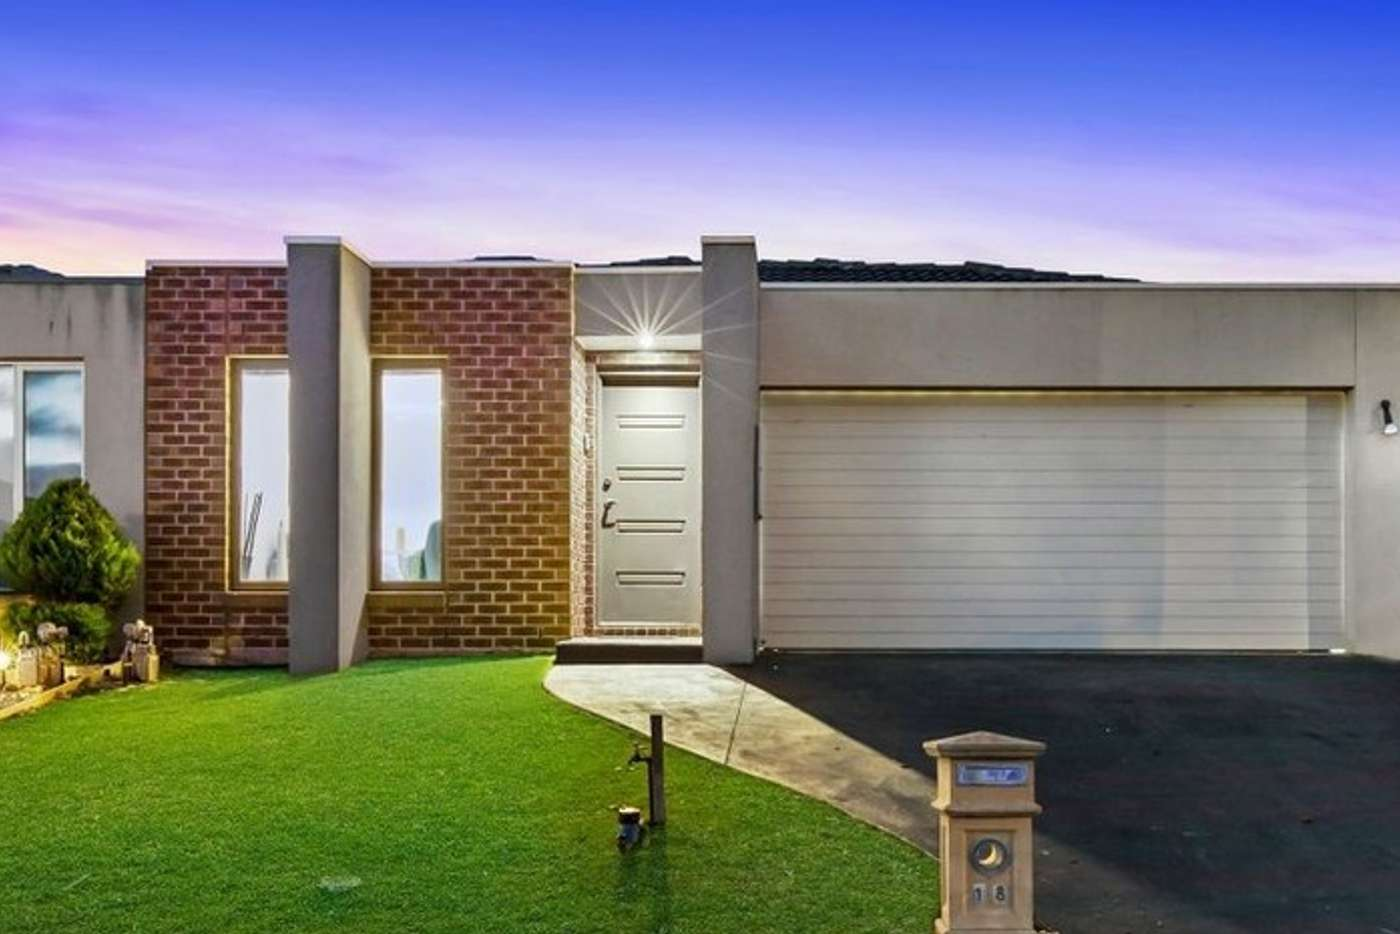 Main view of Homely house listing, 18 Talliver Terrace, Truganina VIC 3029